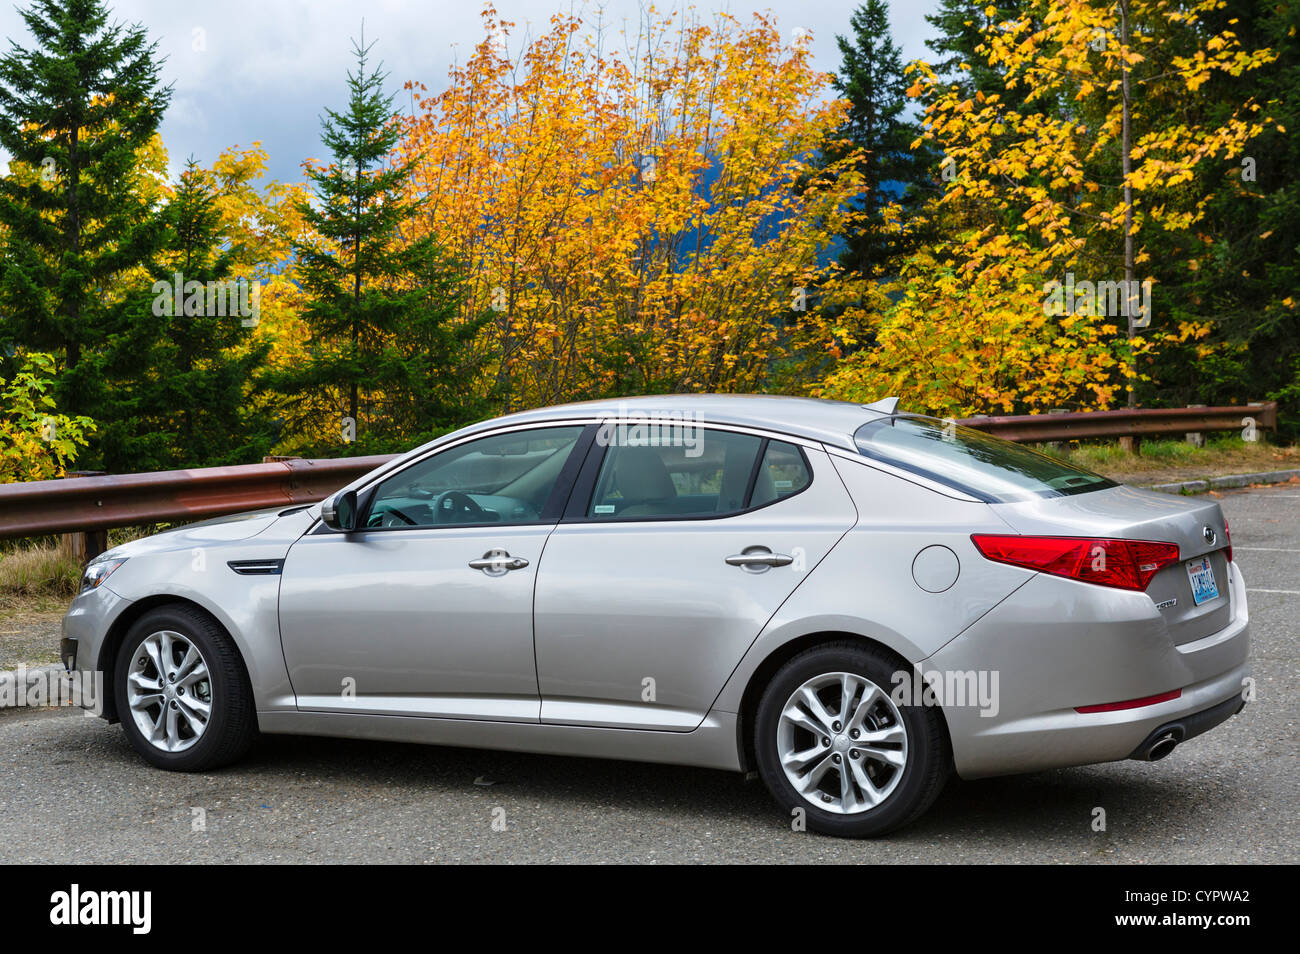 Ein 2012 Kia Optima Modellauto, Washington State, USA Stockbild